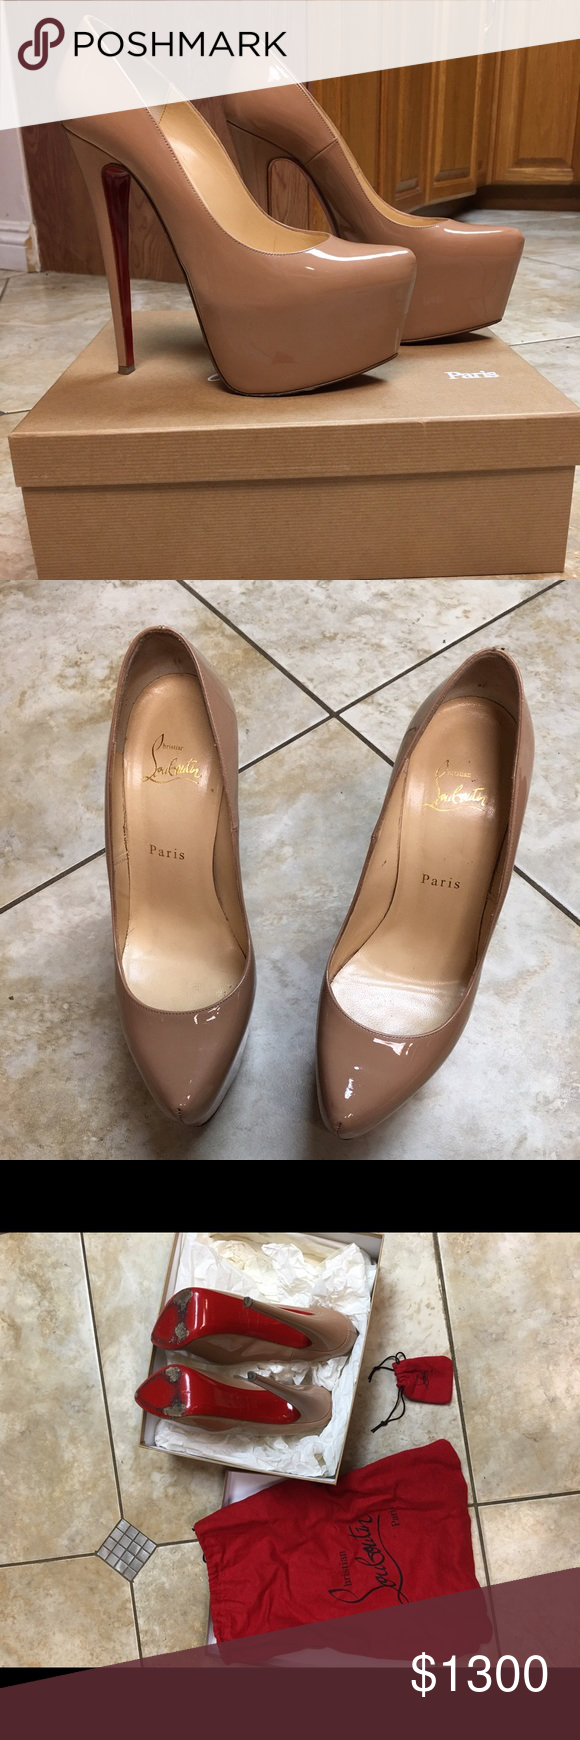 Christian Louboutin nude Nude Daffodile 160. Patent soft. Worn Only worn 3 times. They're still new with box and bag. Size 38.5 (for those who wear a size 8US) willing to Negotiate NO TRADE! Christian Louboutin Shoes Platforms